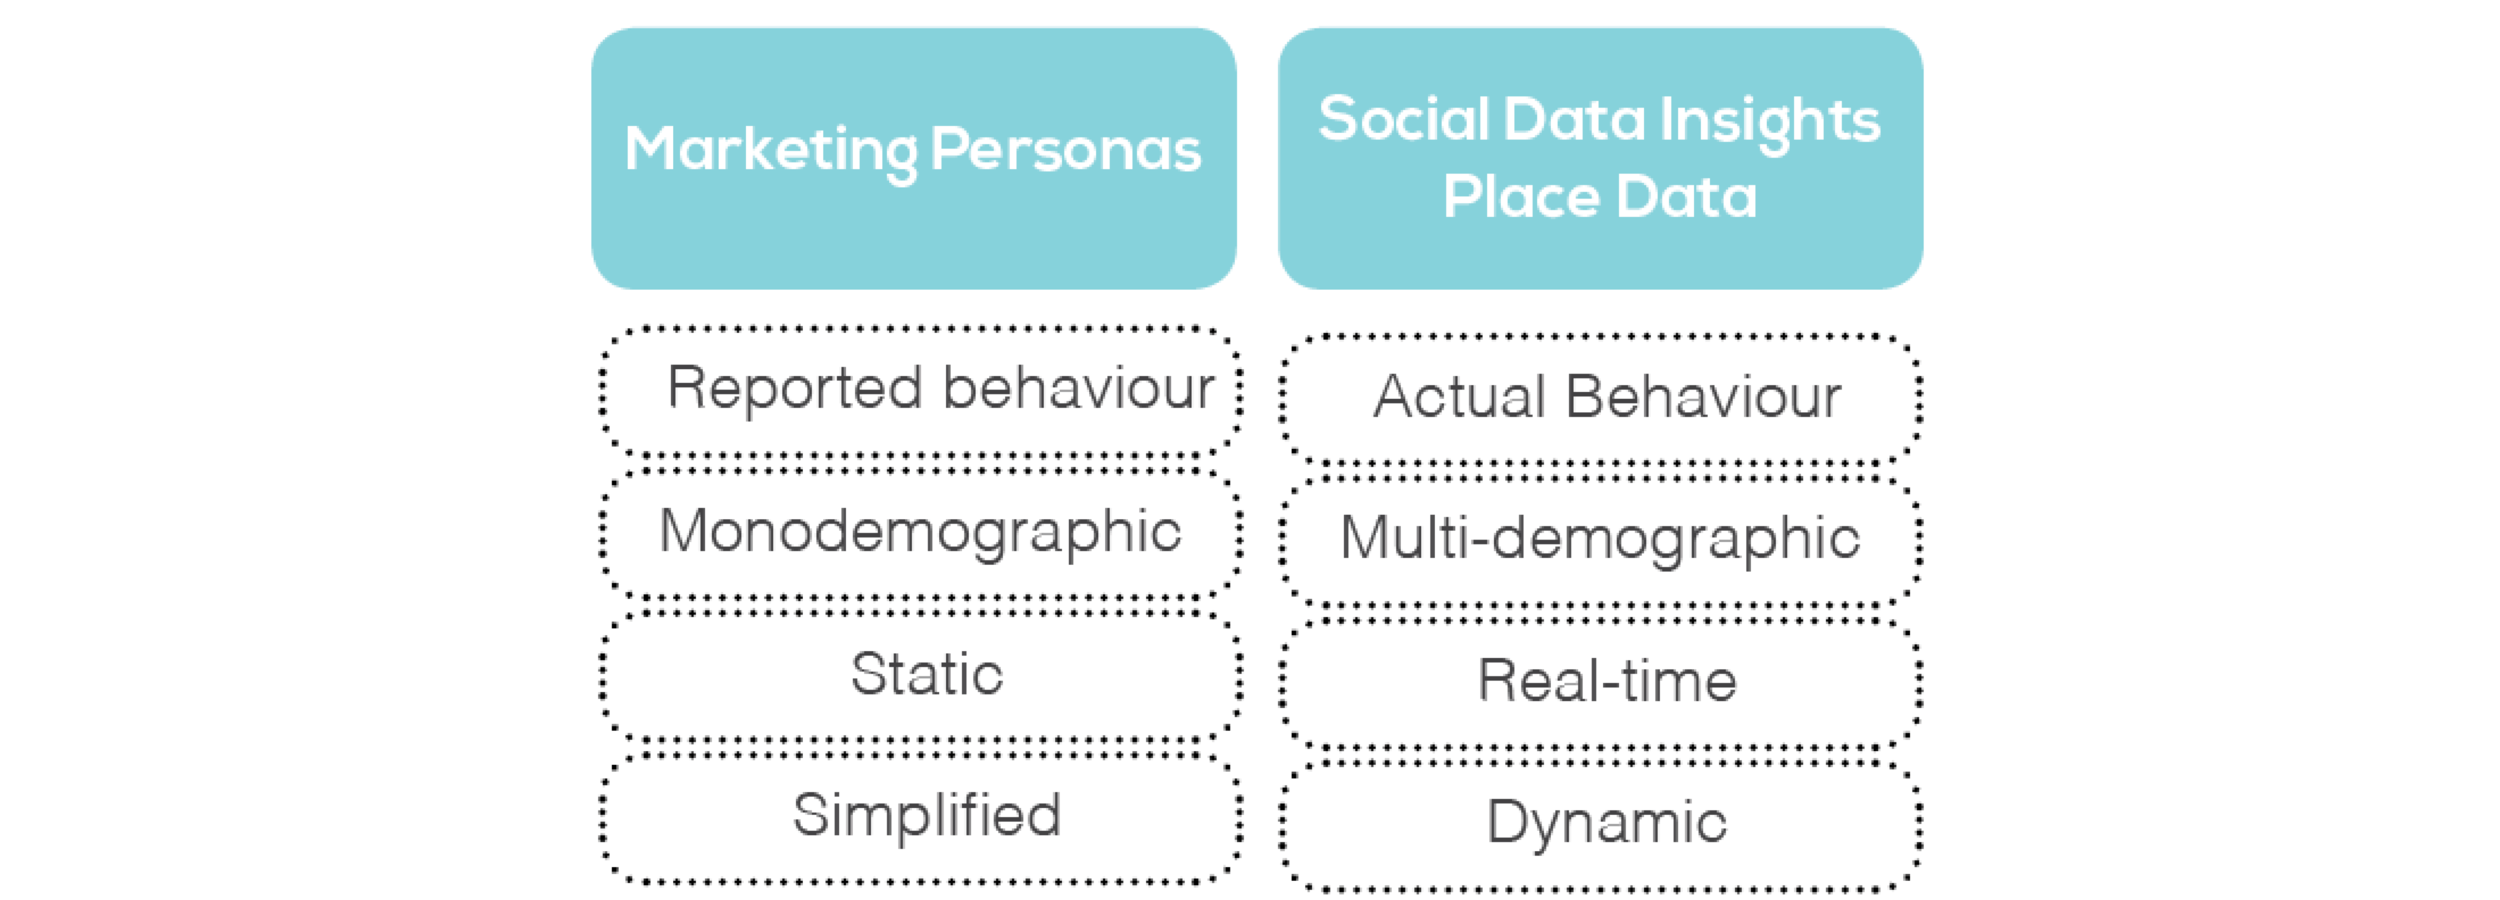 Marketing Personas vs Social Data Insights: Understanding the difference.